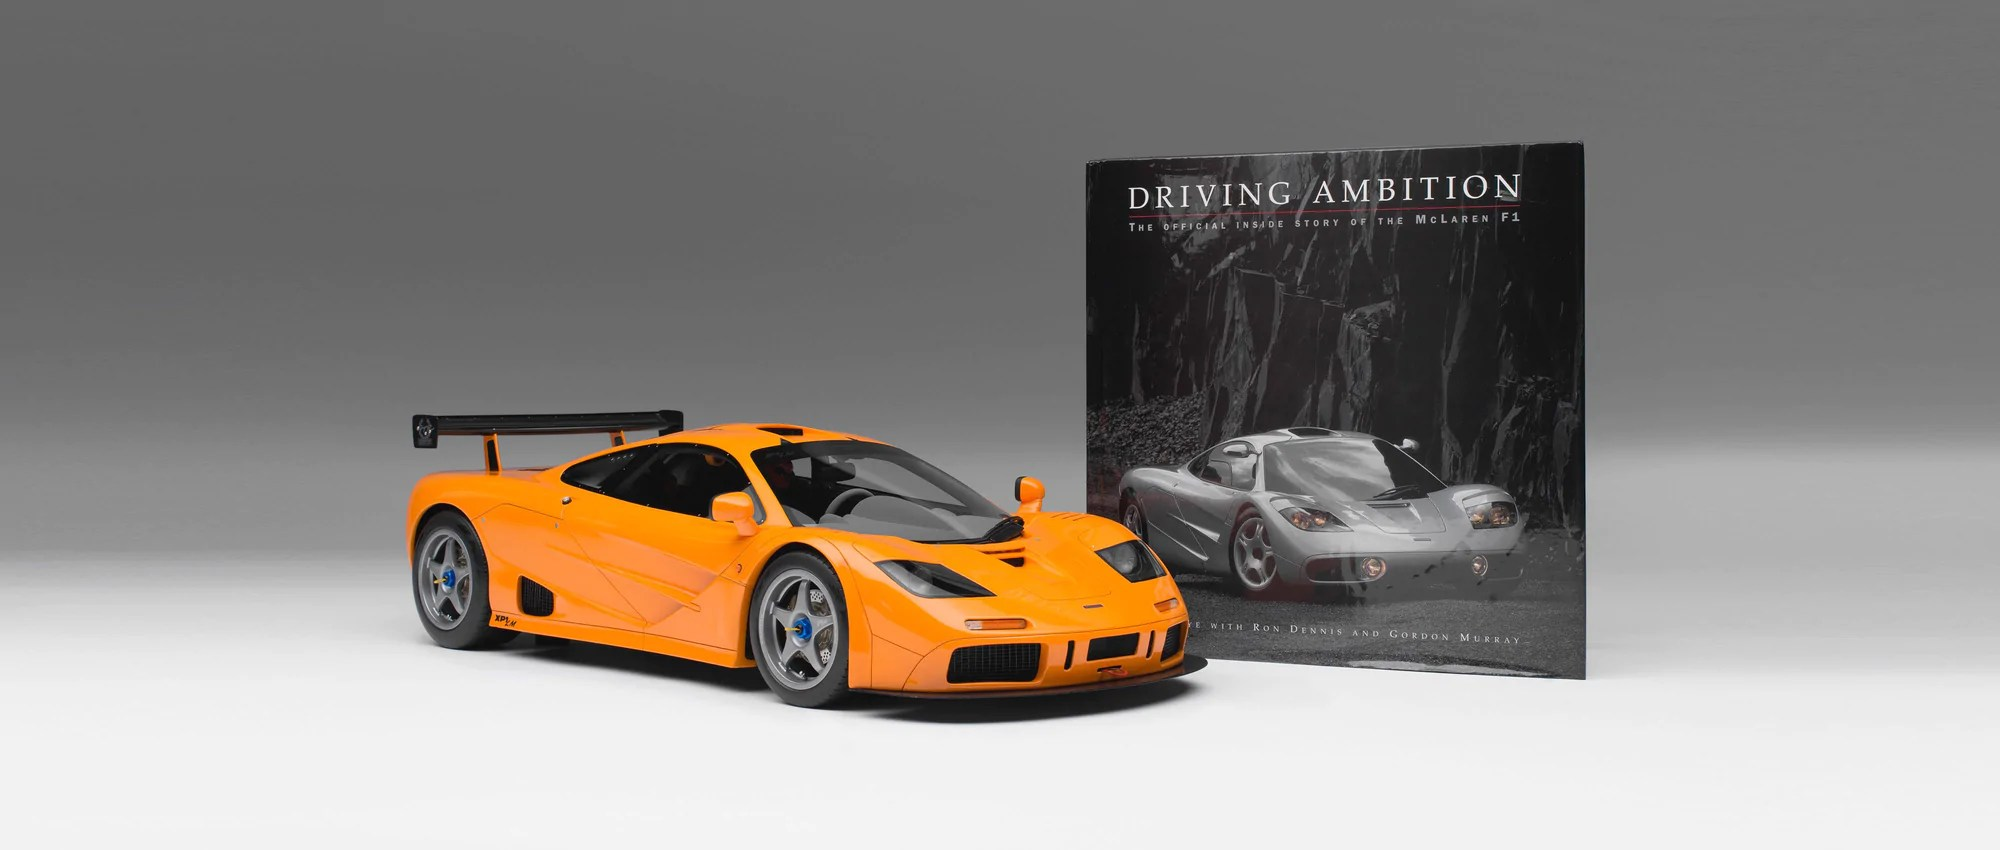 small resolution of mclaren f1 lm gordon murray signed copy of driving ambition